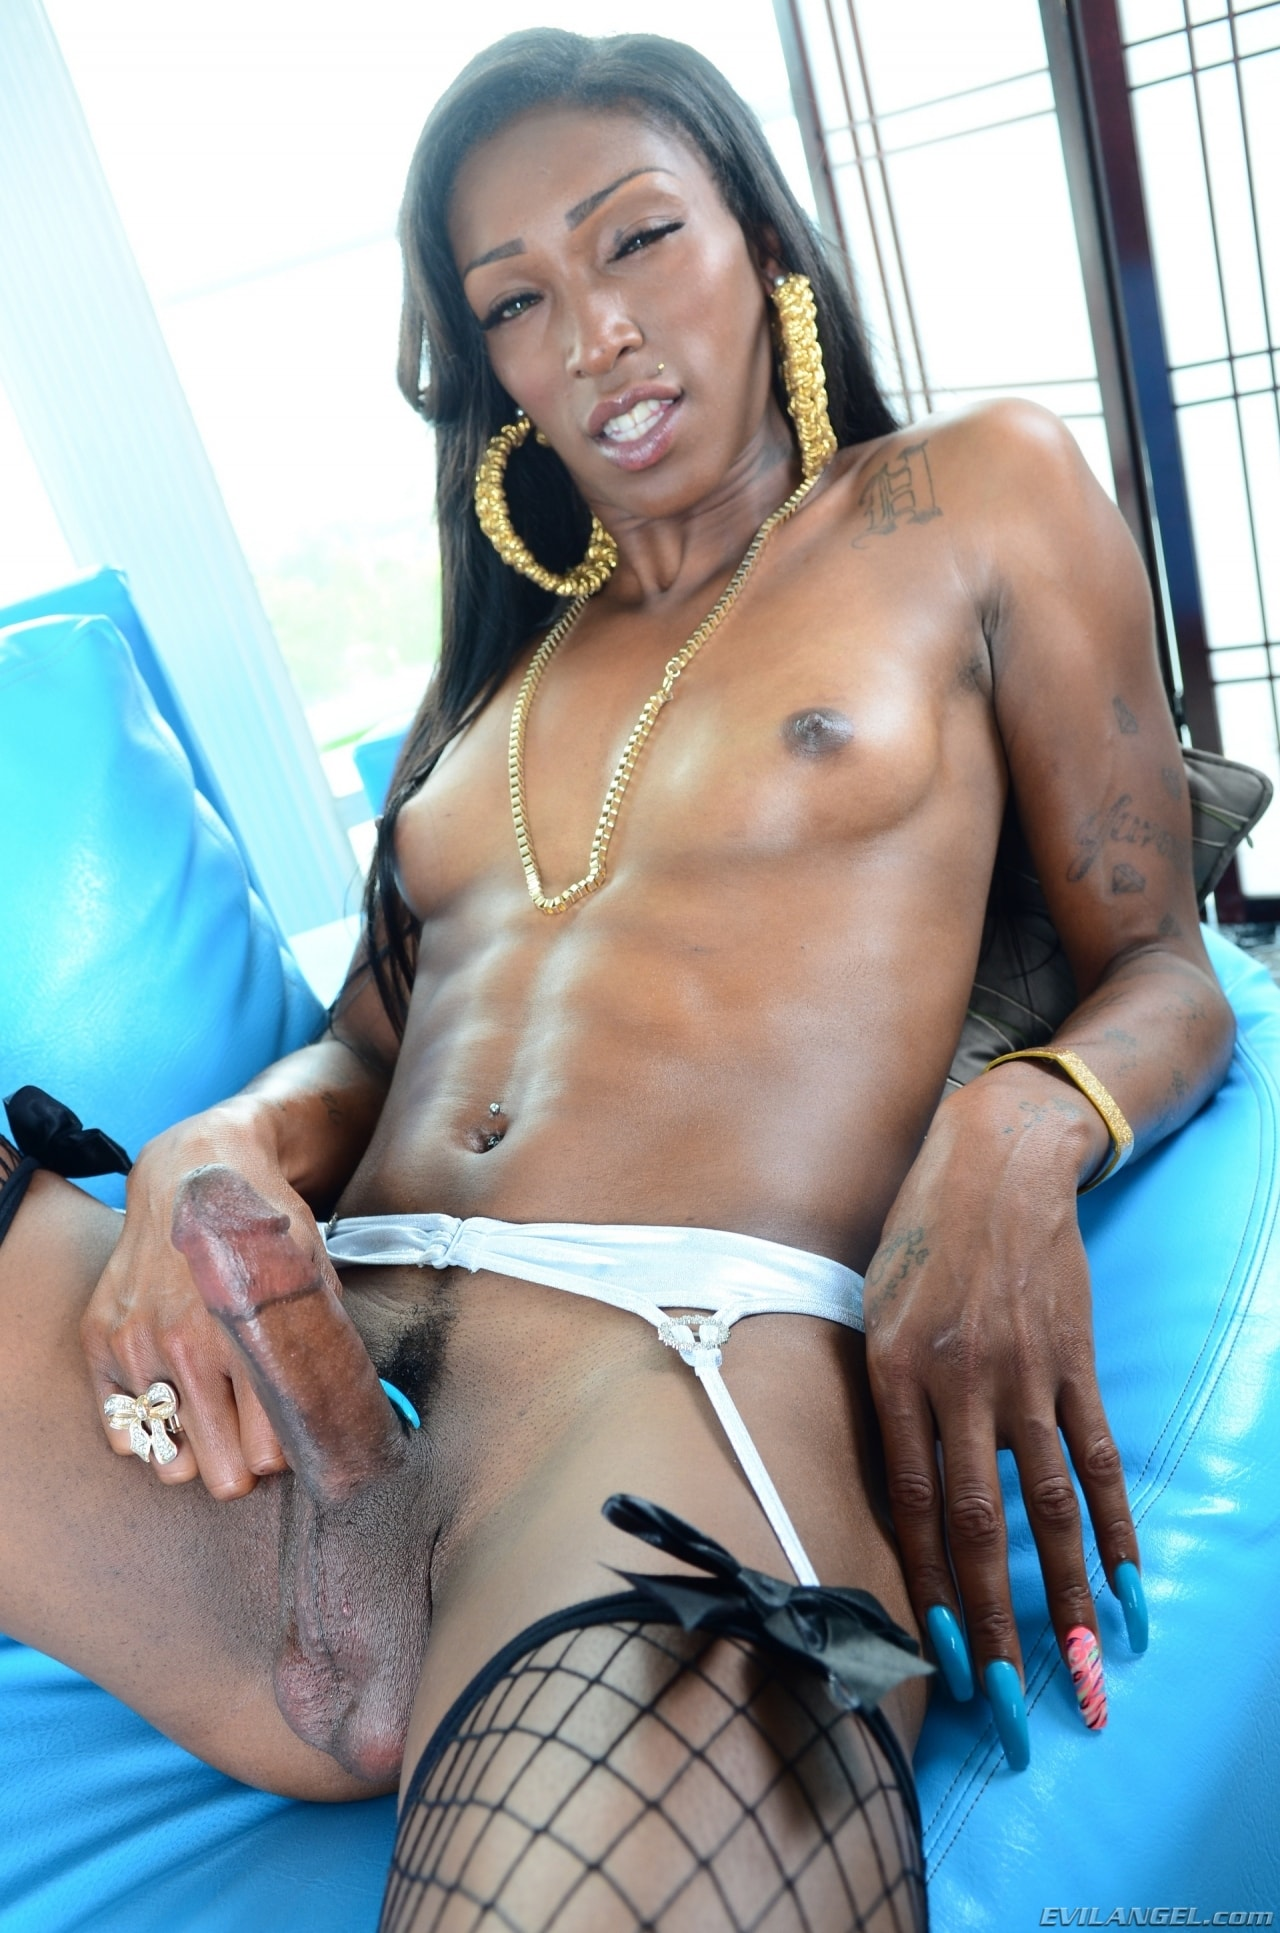 I Love Black Shemales 'Black Shemale Idol - The Auditions 04' starring Nyla Melrose (Photo 139)